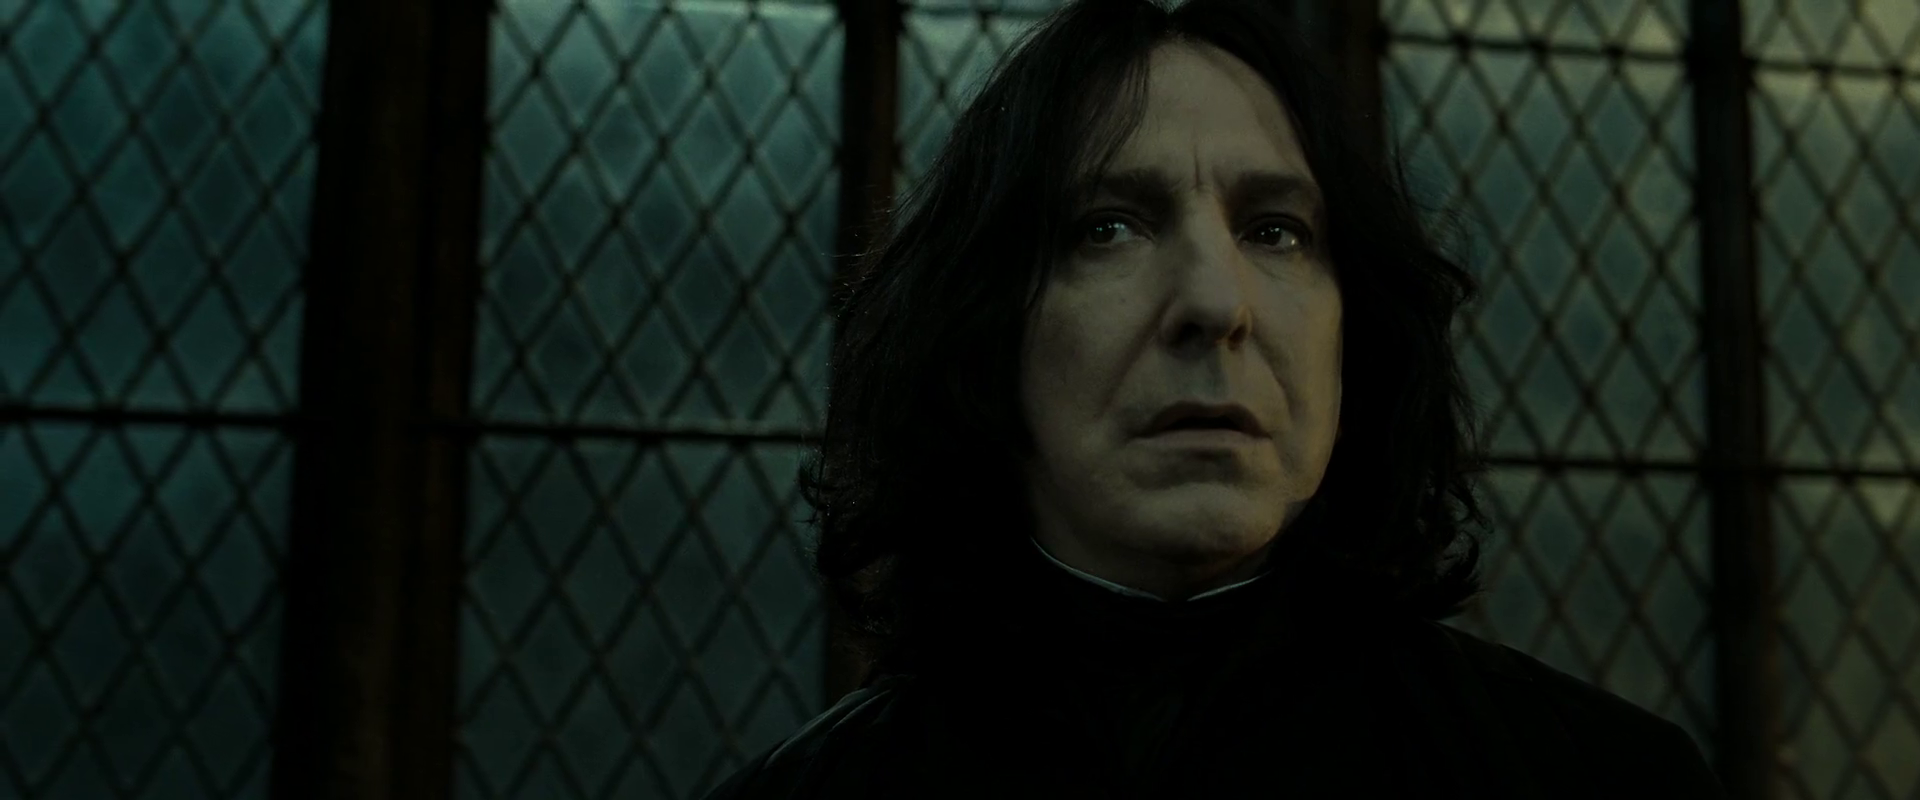 deathly-hallows-hd-severus-snape-26392756-1920-800